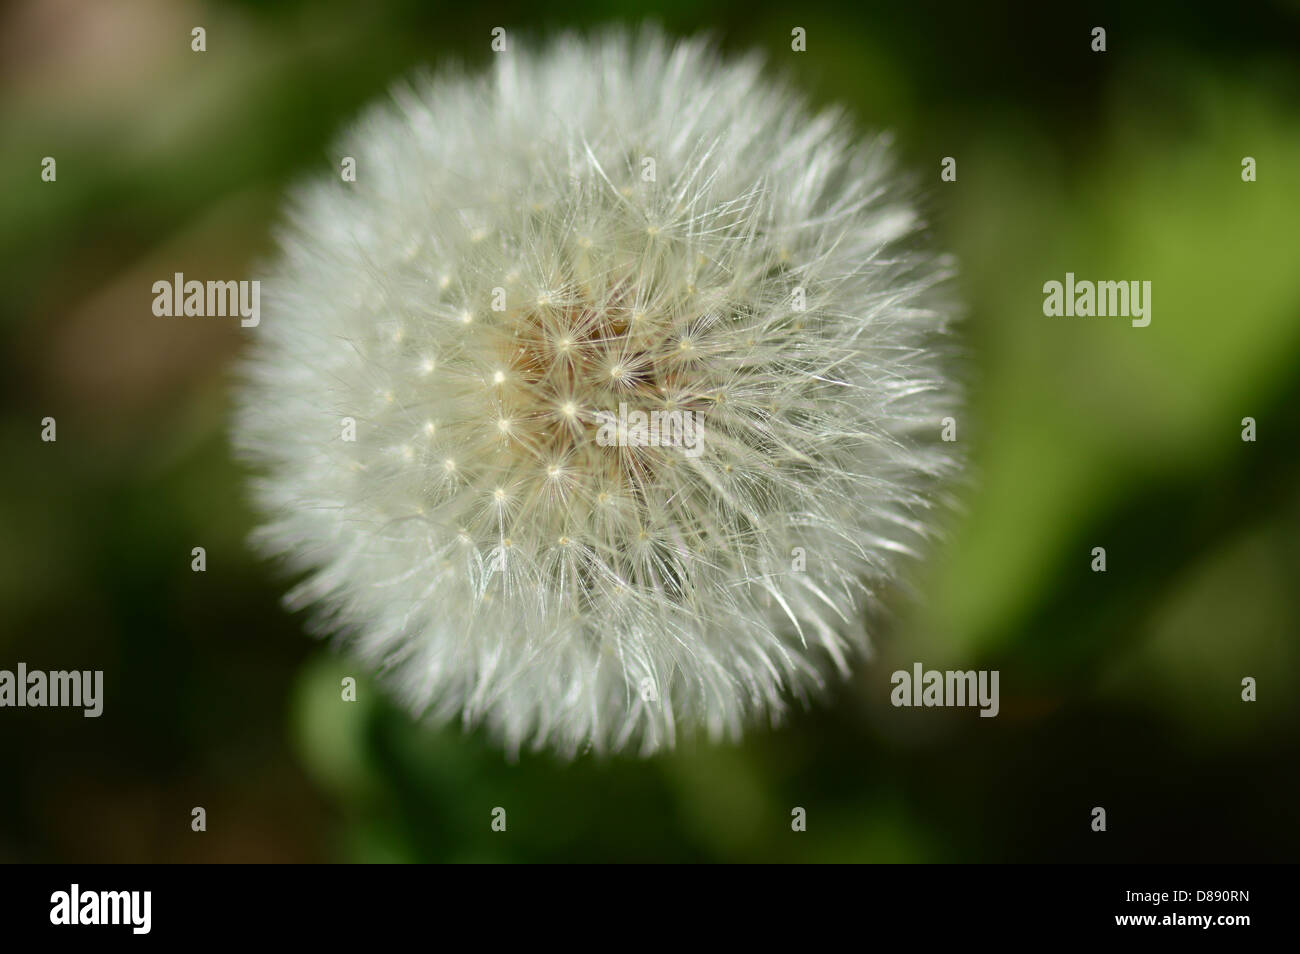 Close up restricted focus image of a dandelion clock seedhead - Stock Image